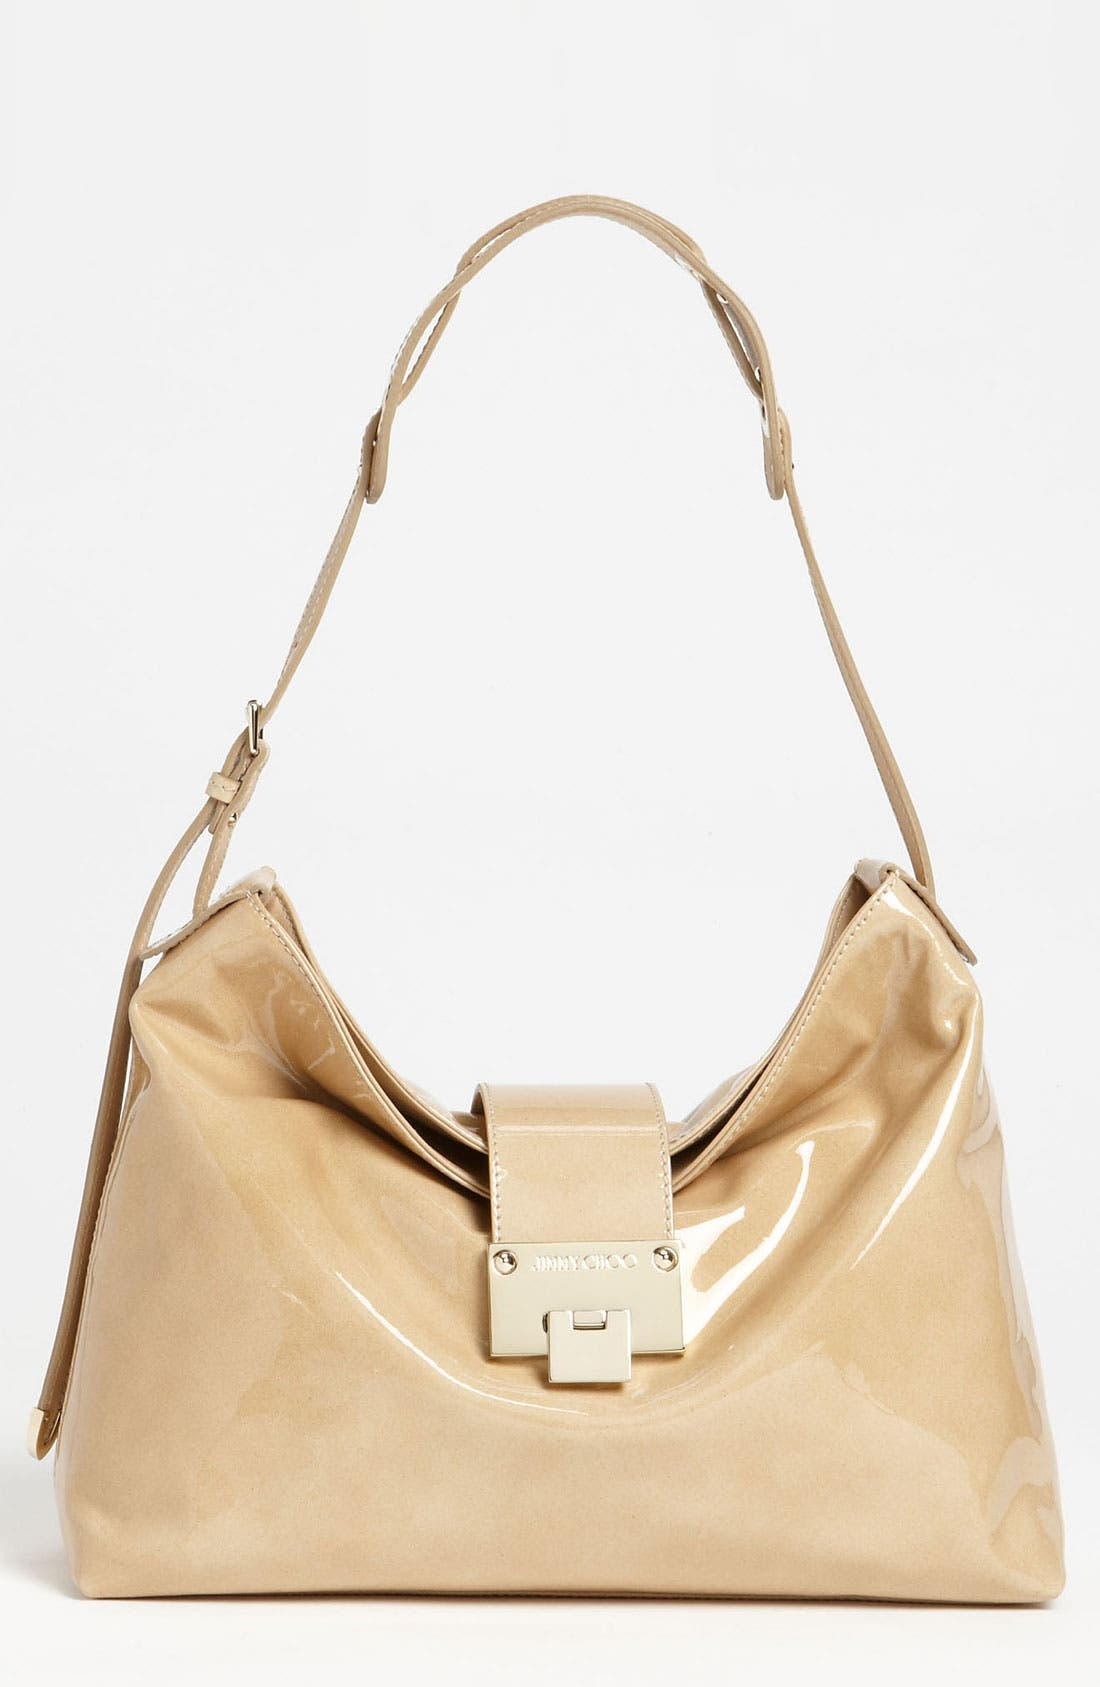 Main Image - Jimmy Choo 'Rachel - Small' Patent Leather Shoulder Bag